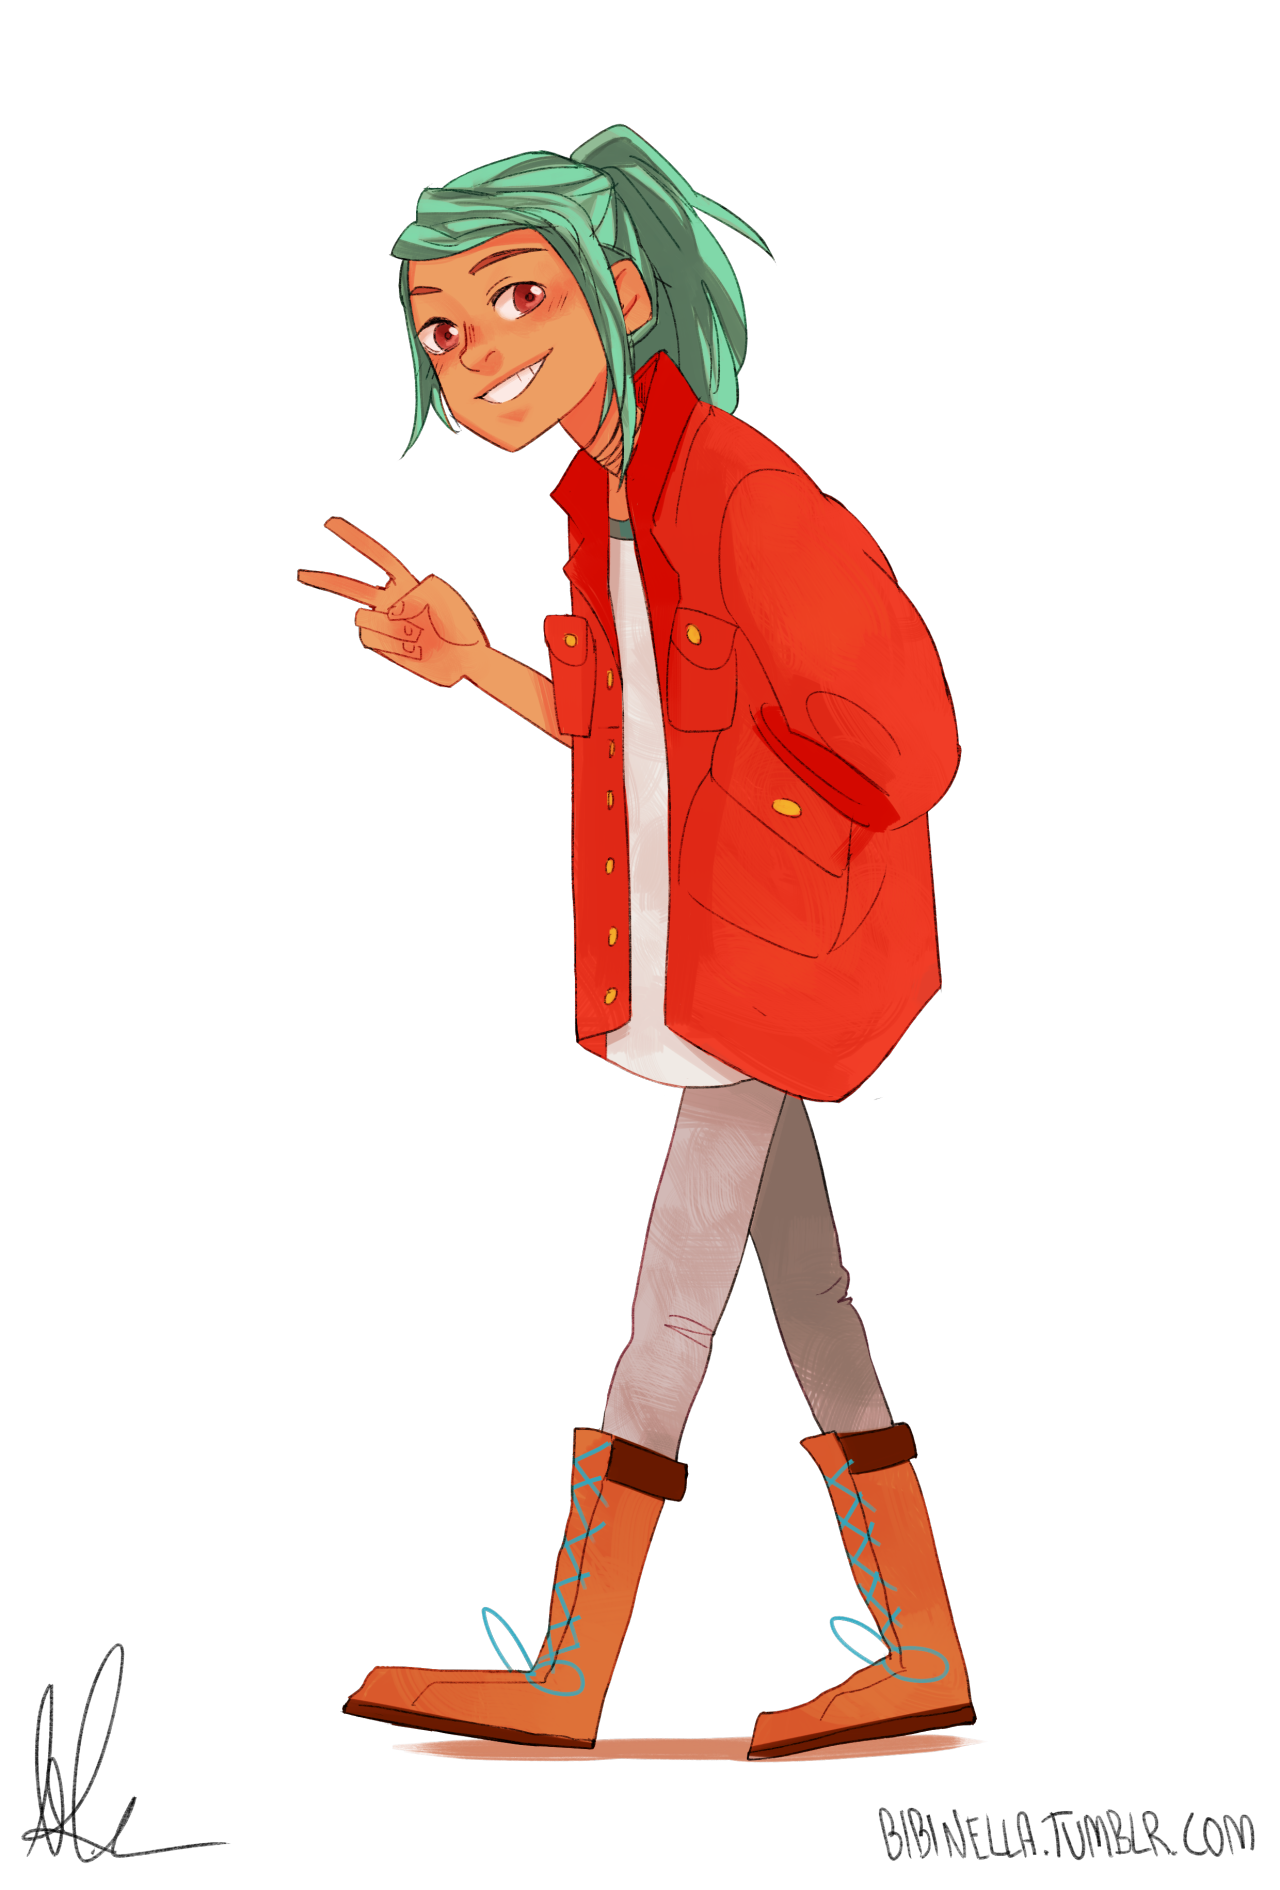 Indie fashion cartoon png. Alex from the game